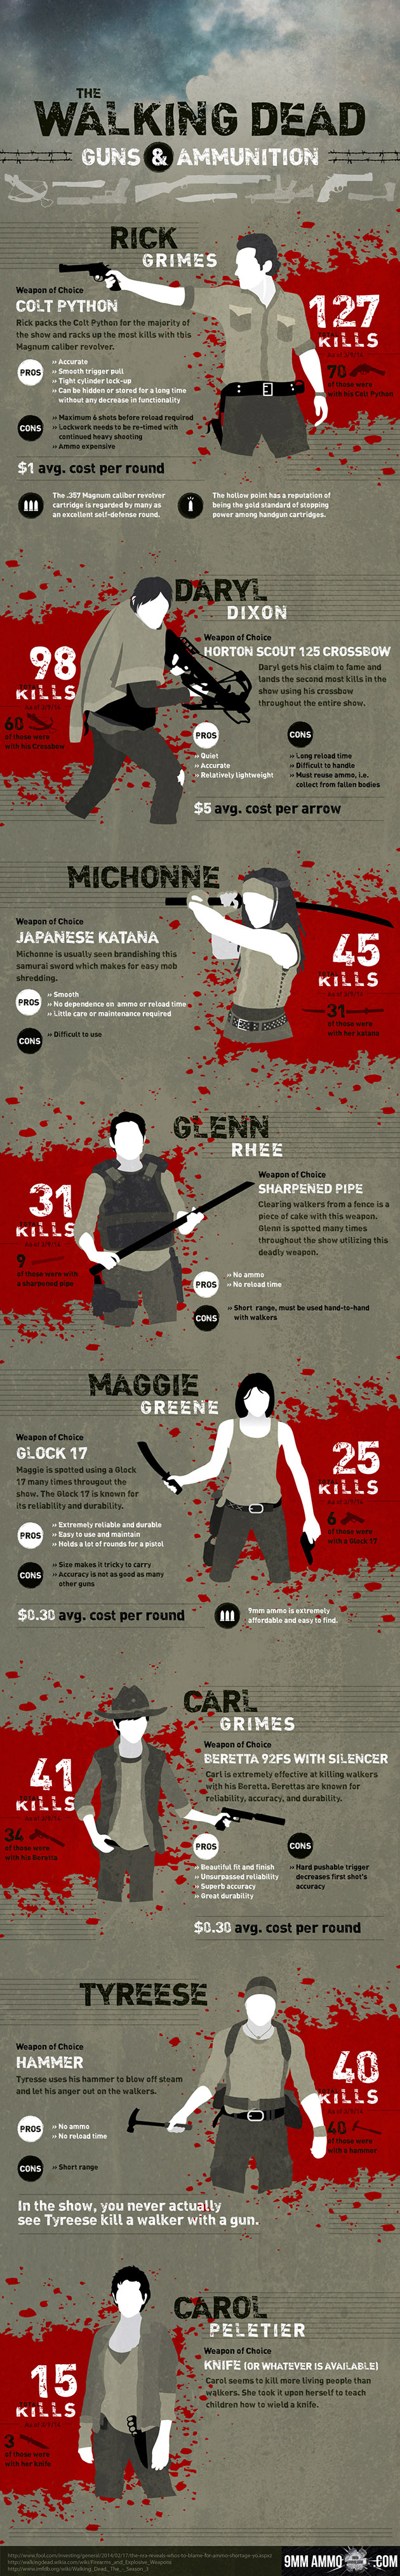 Walking Dead Weapons Graphic